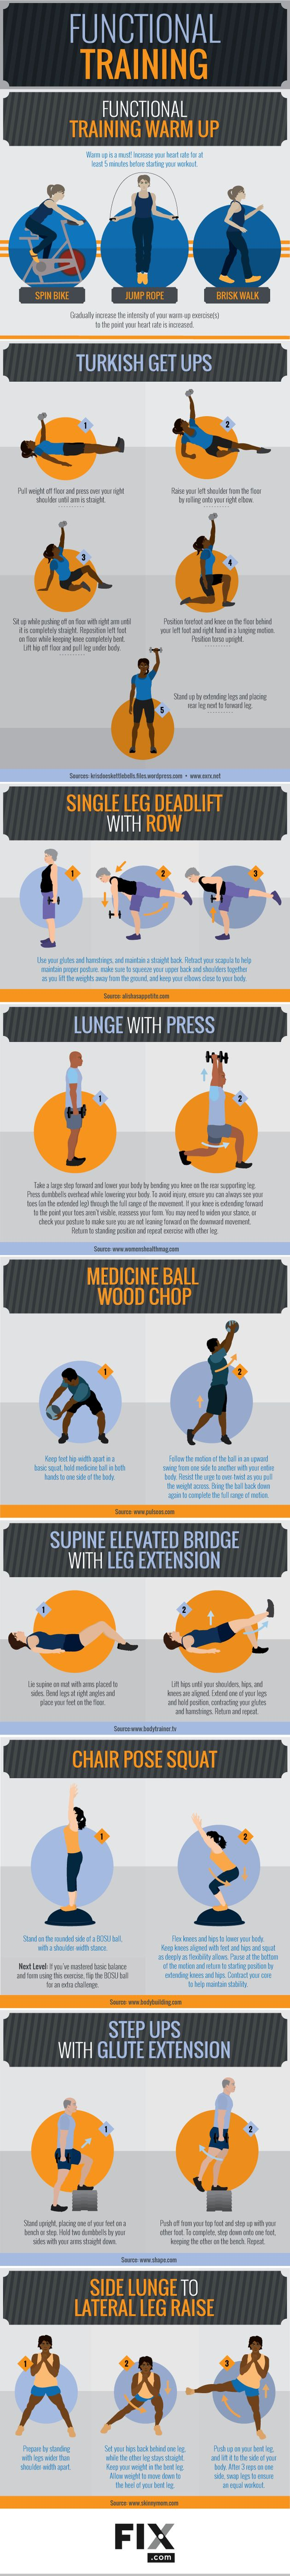 'Functional Training' Is The Best Exercise You're Already Doing